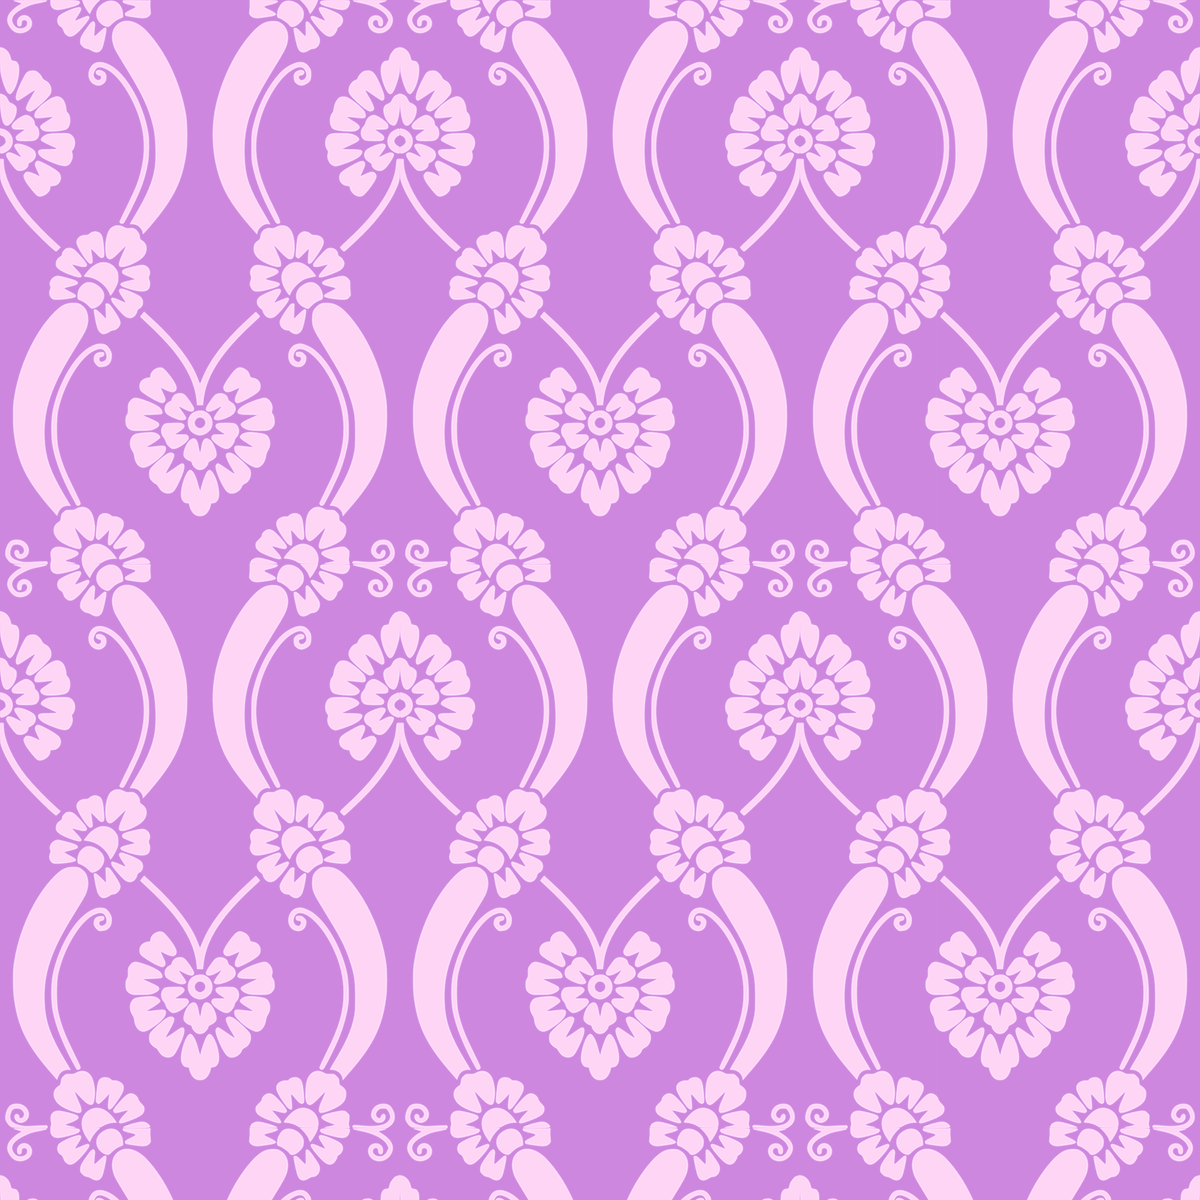 This is a photo of Superb Free Printable Scrapbook Paper Designs